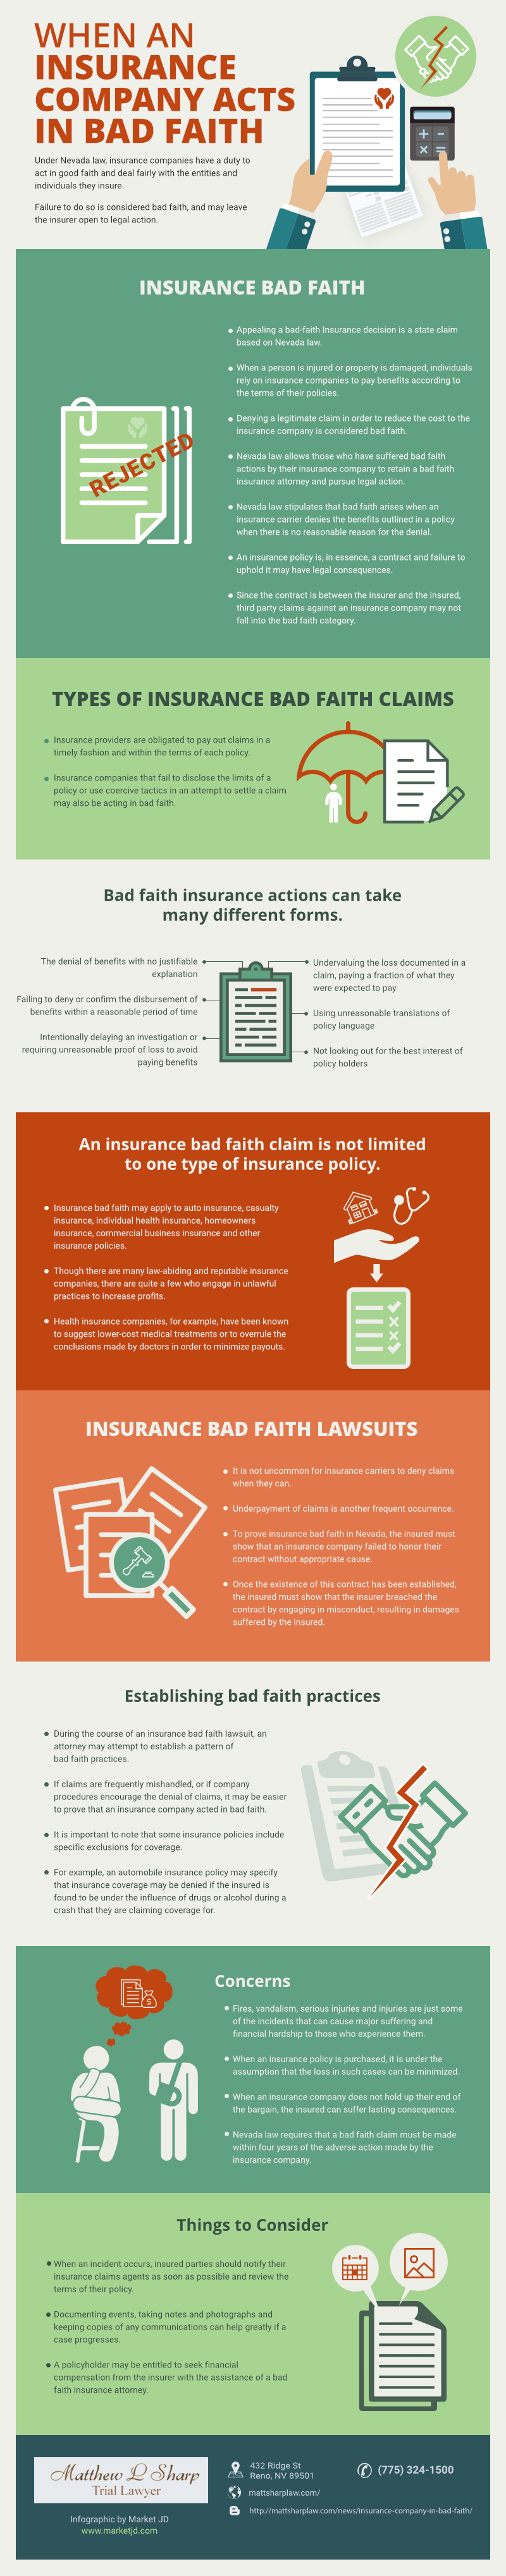 infographic_Insurance Company acts in Bad Faith